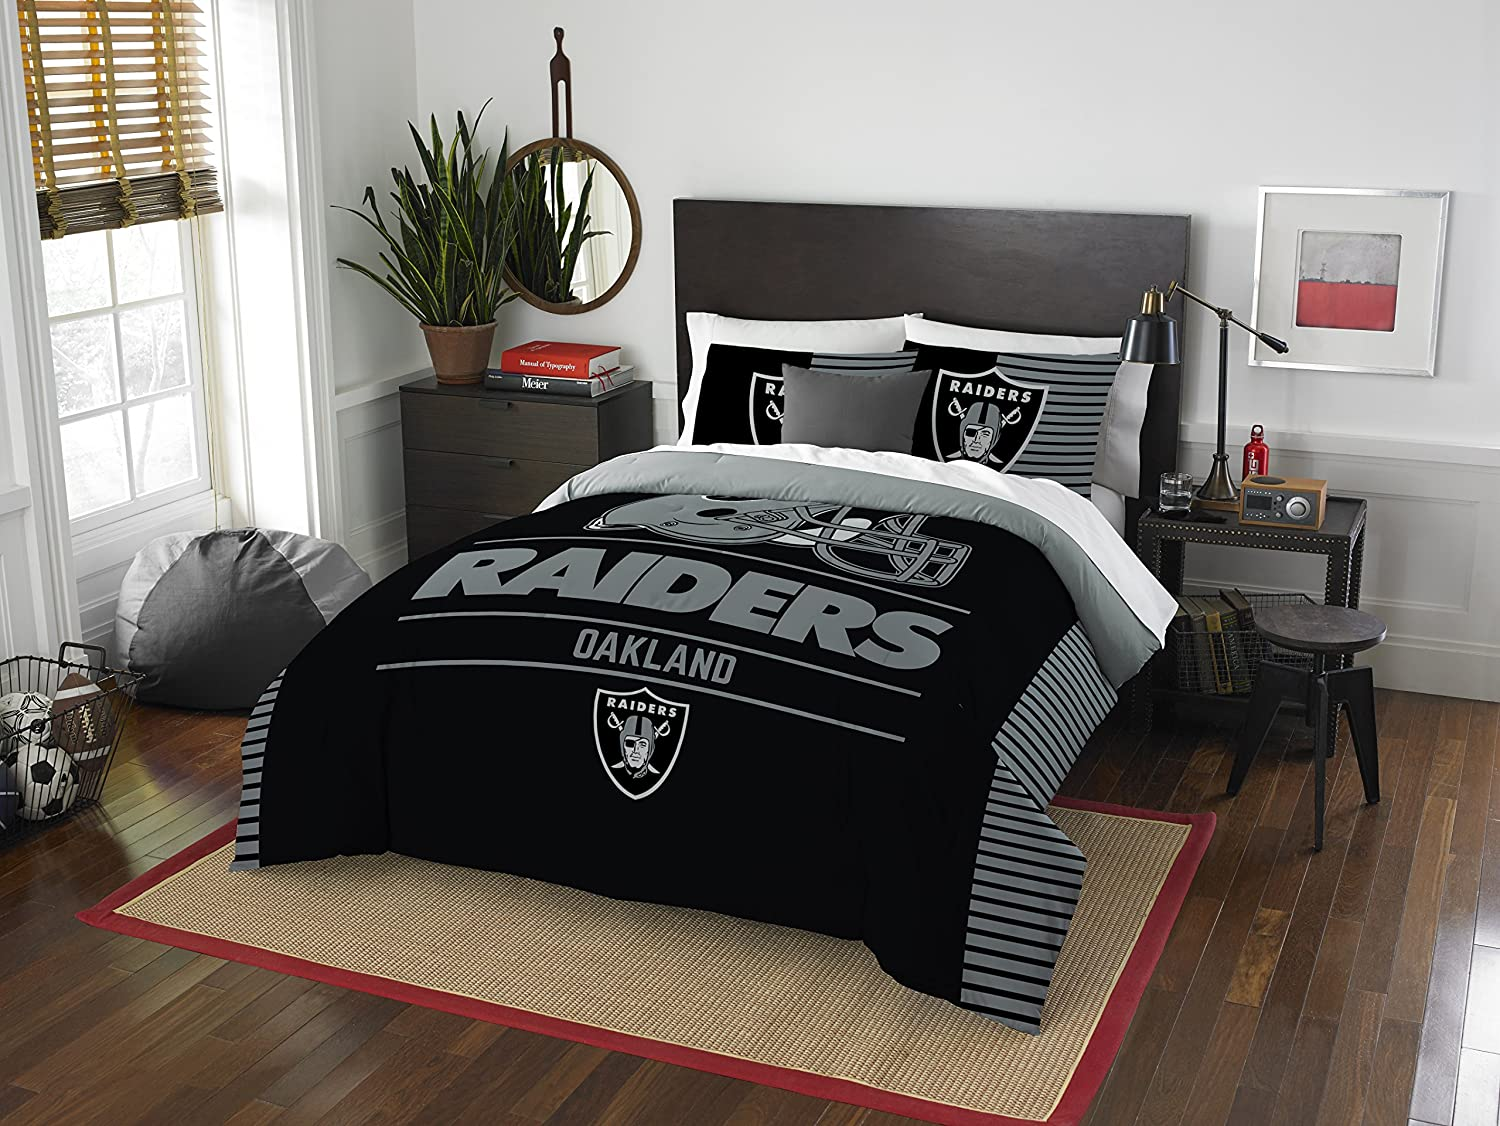 NFL Oakland Raiders Draft Two Sham Set, Silver, Full/Queen Size